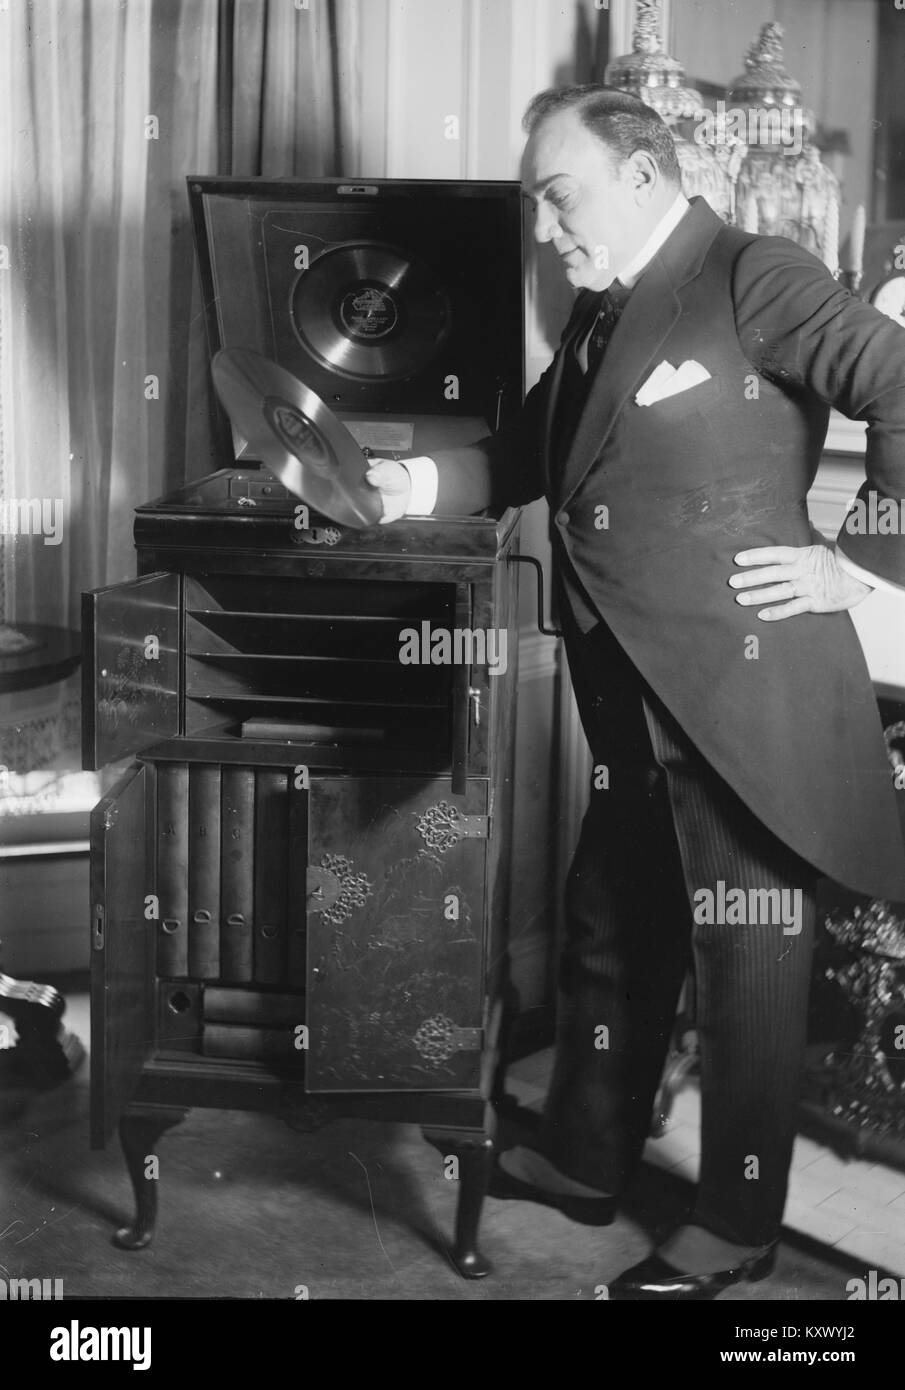 Enrico Caruso Peruses a Disk if his Singing by a Phonograph - Stock Image